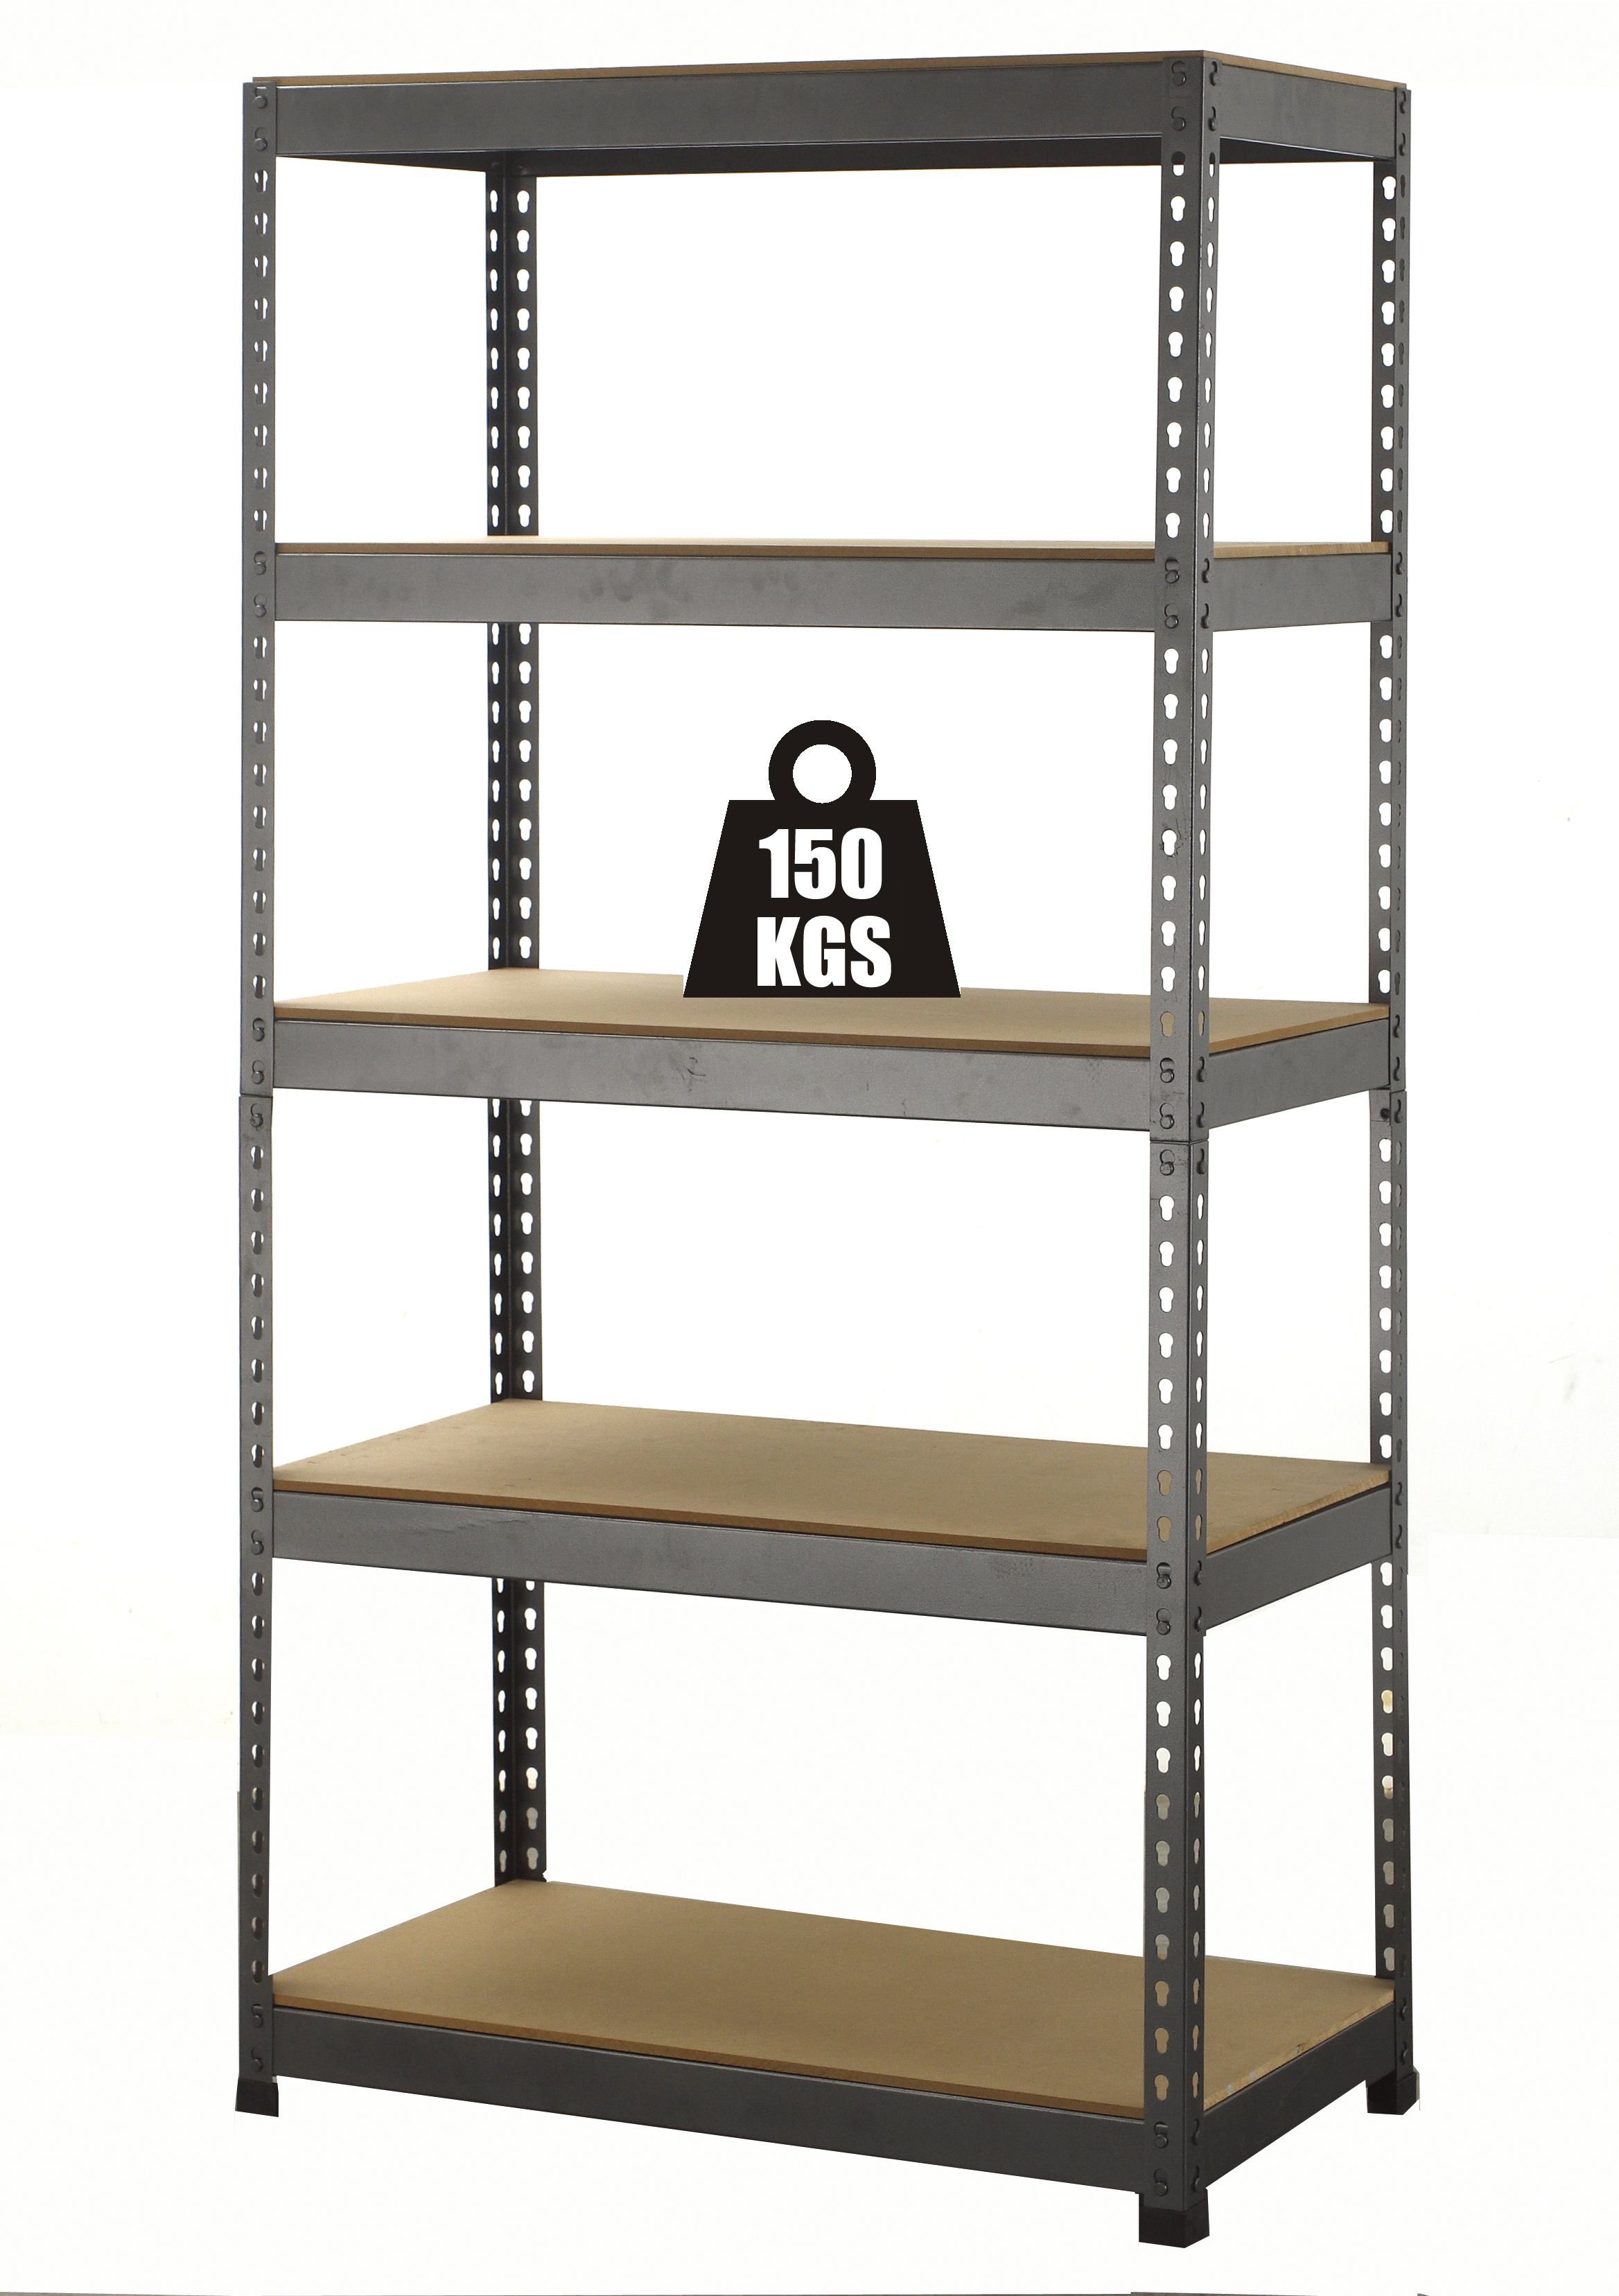 FoxHunter NEW SHELVING Garage Storage Shelves Warehouse